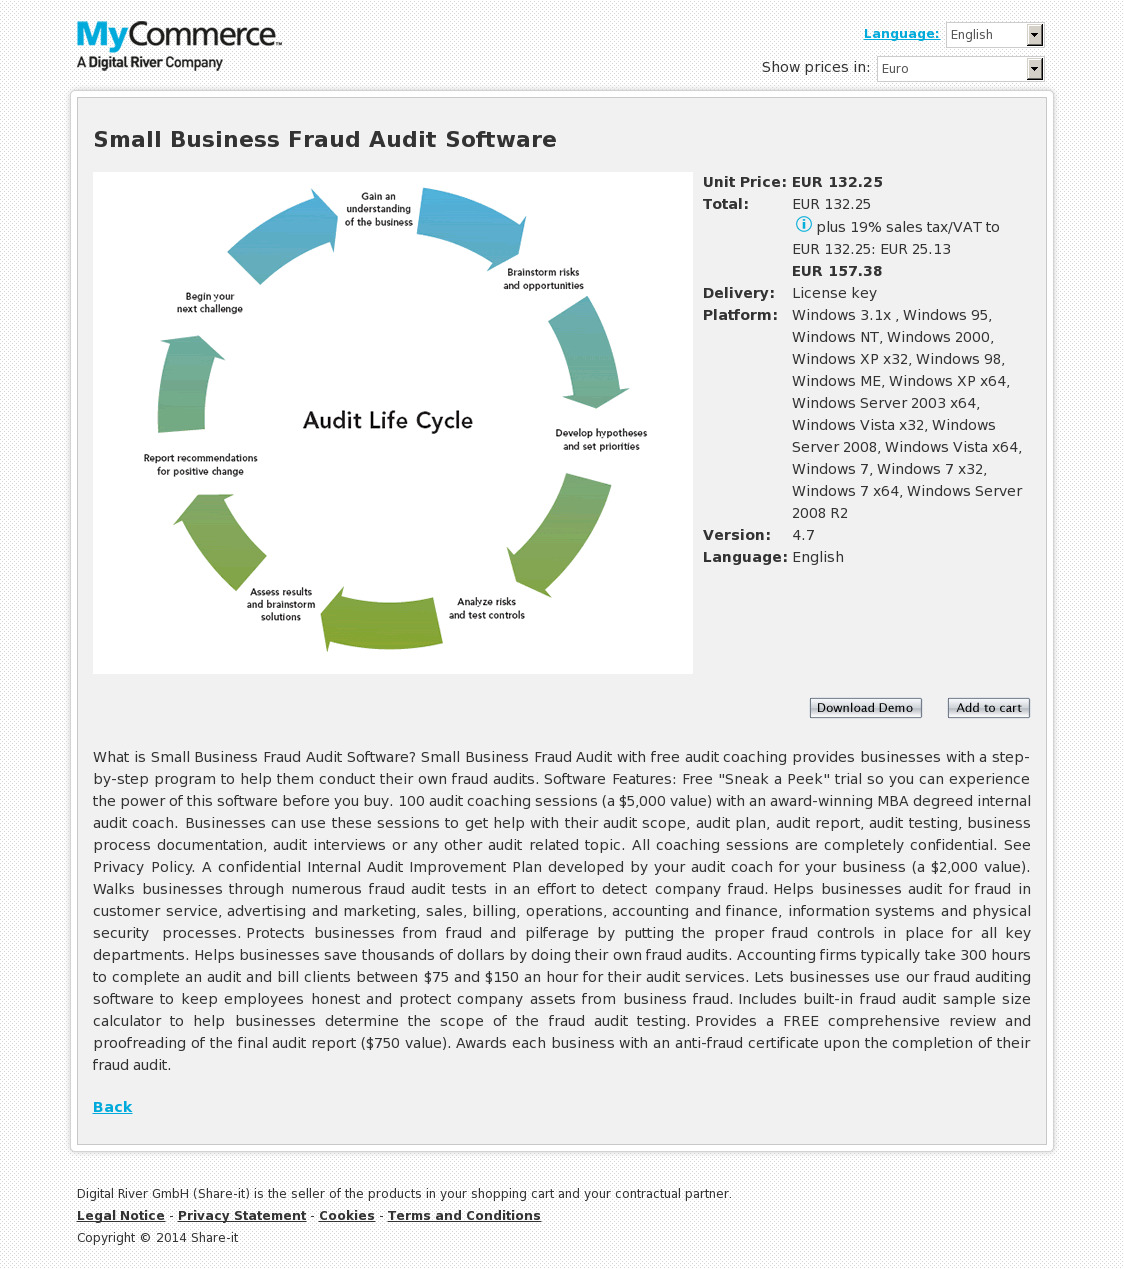 Small Business Fraud Audit Software